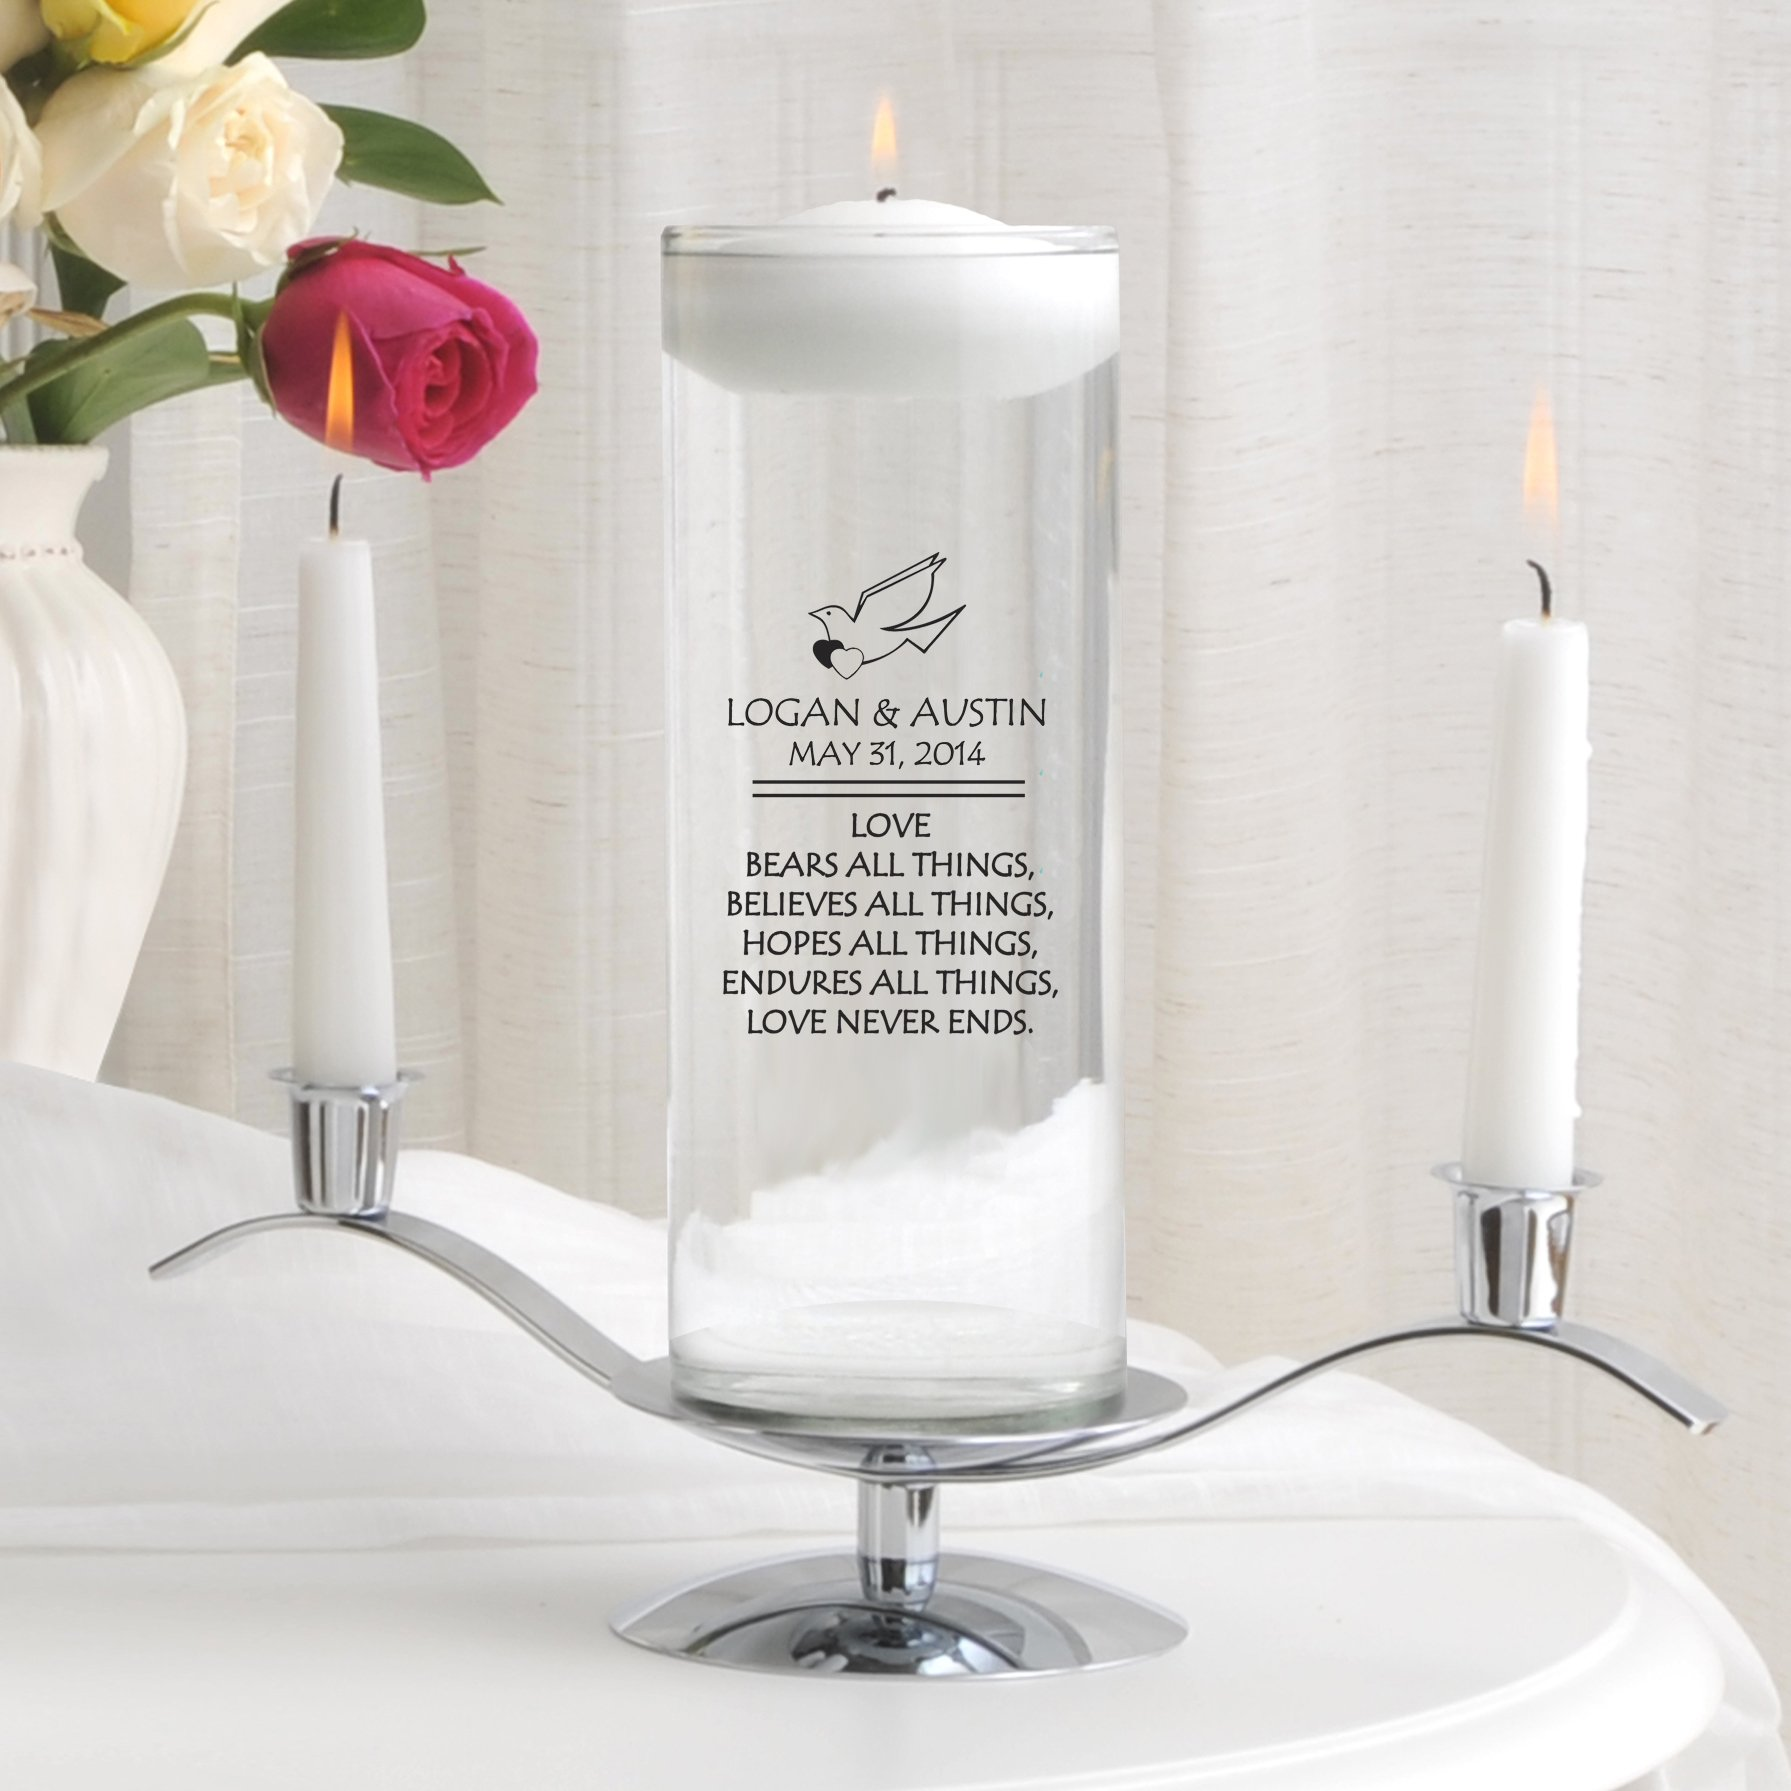 Personalized Floating Wedding Unity Candle Set- Imperial